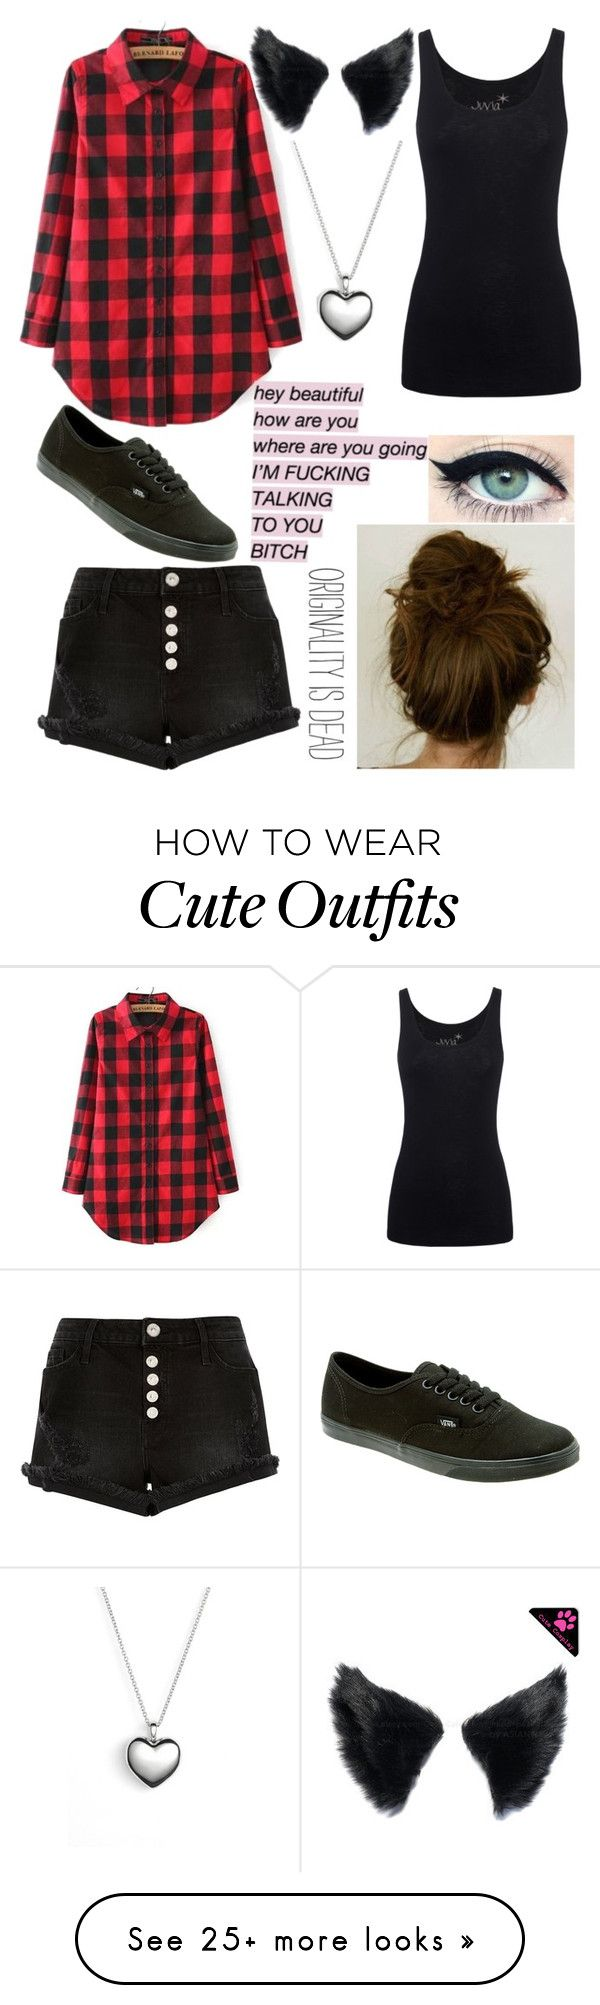 """My outfit for today"" by ur-simply-unique on Polyvore featuring Juvia, River Island, Pandora and Vans"